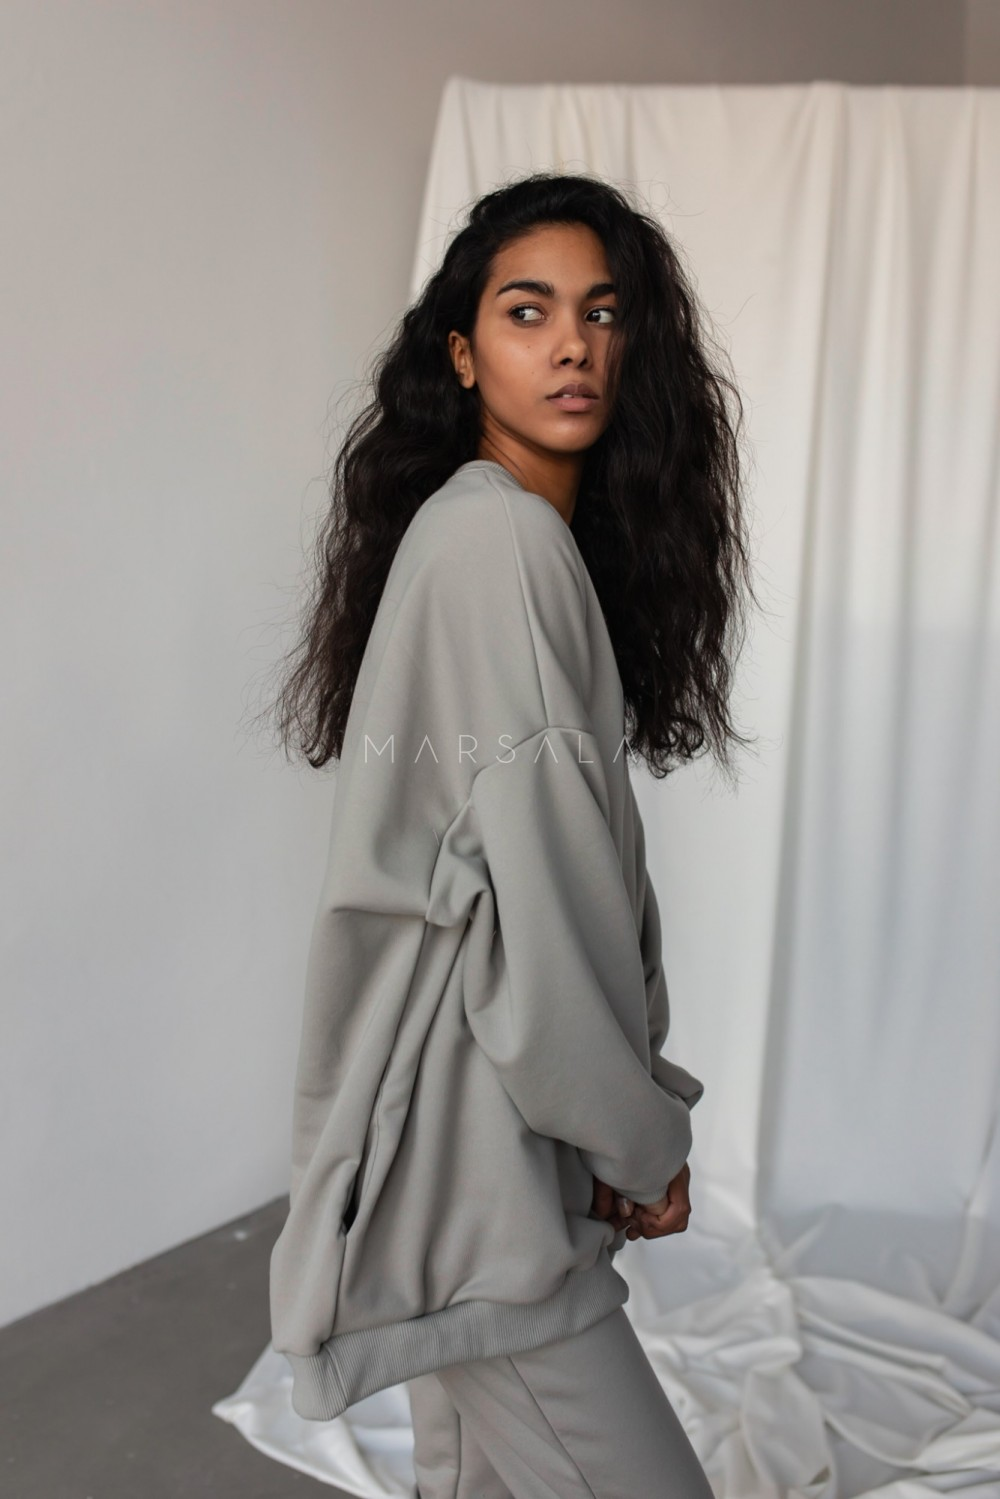 Oversized elongated blouse in ICE FLOW HUSH BY MARSALA